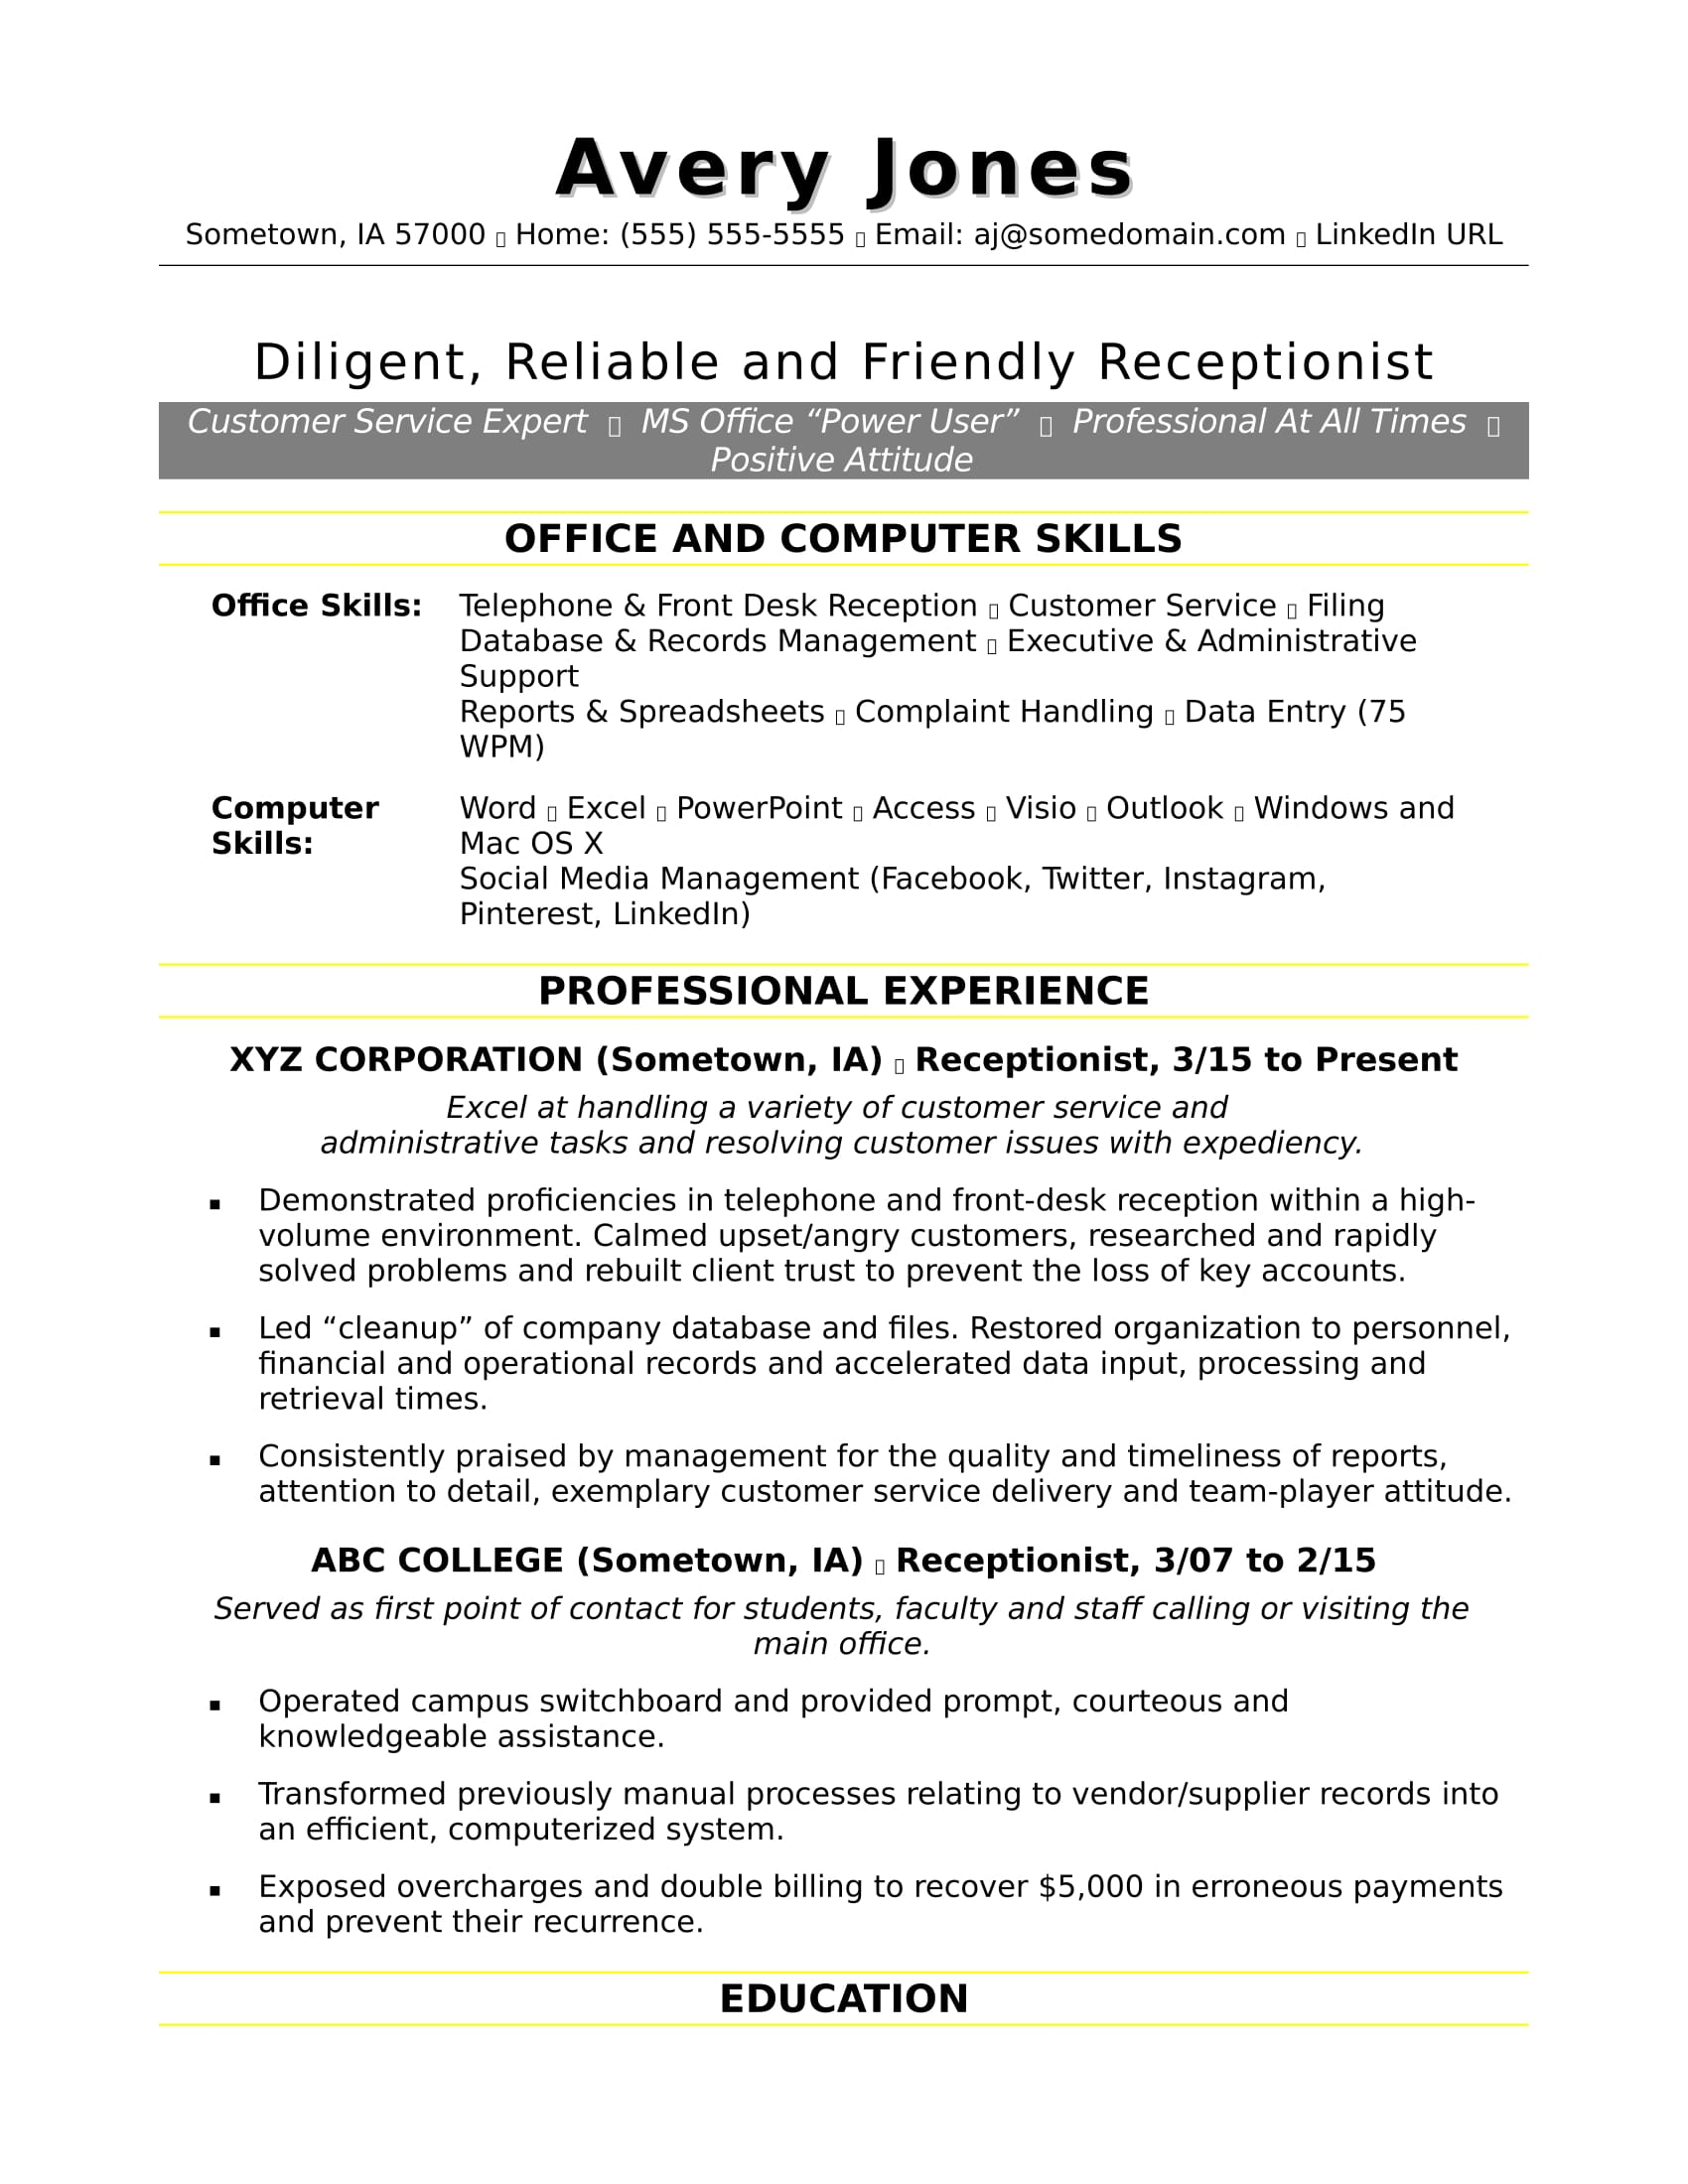 Sample Resume For A Receptionist  Skills Sample Resume